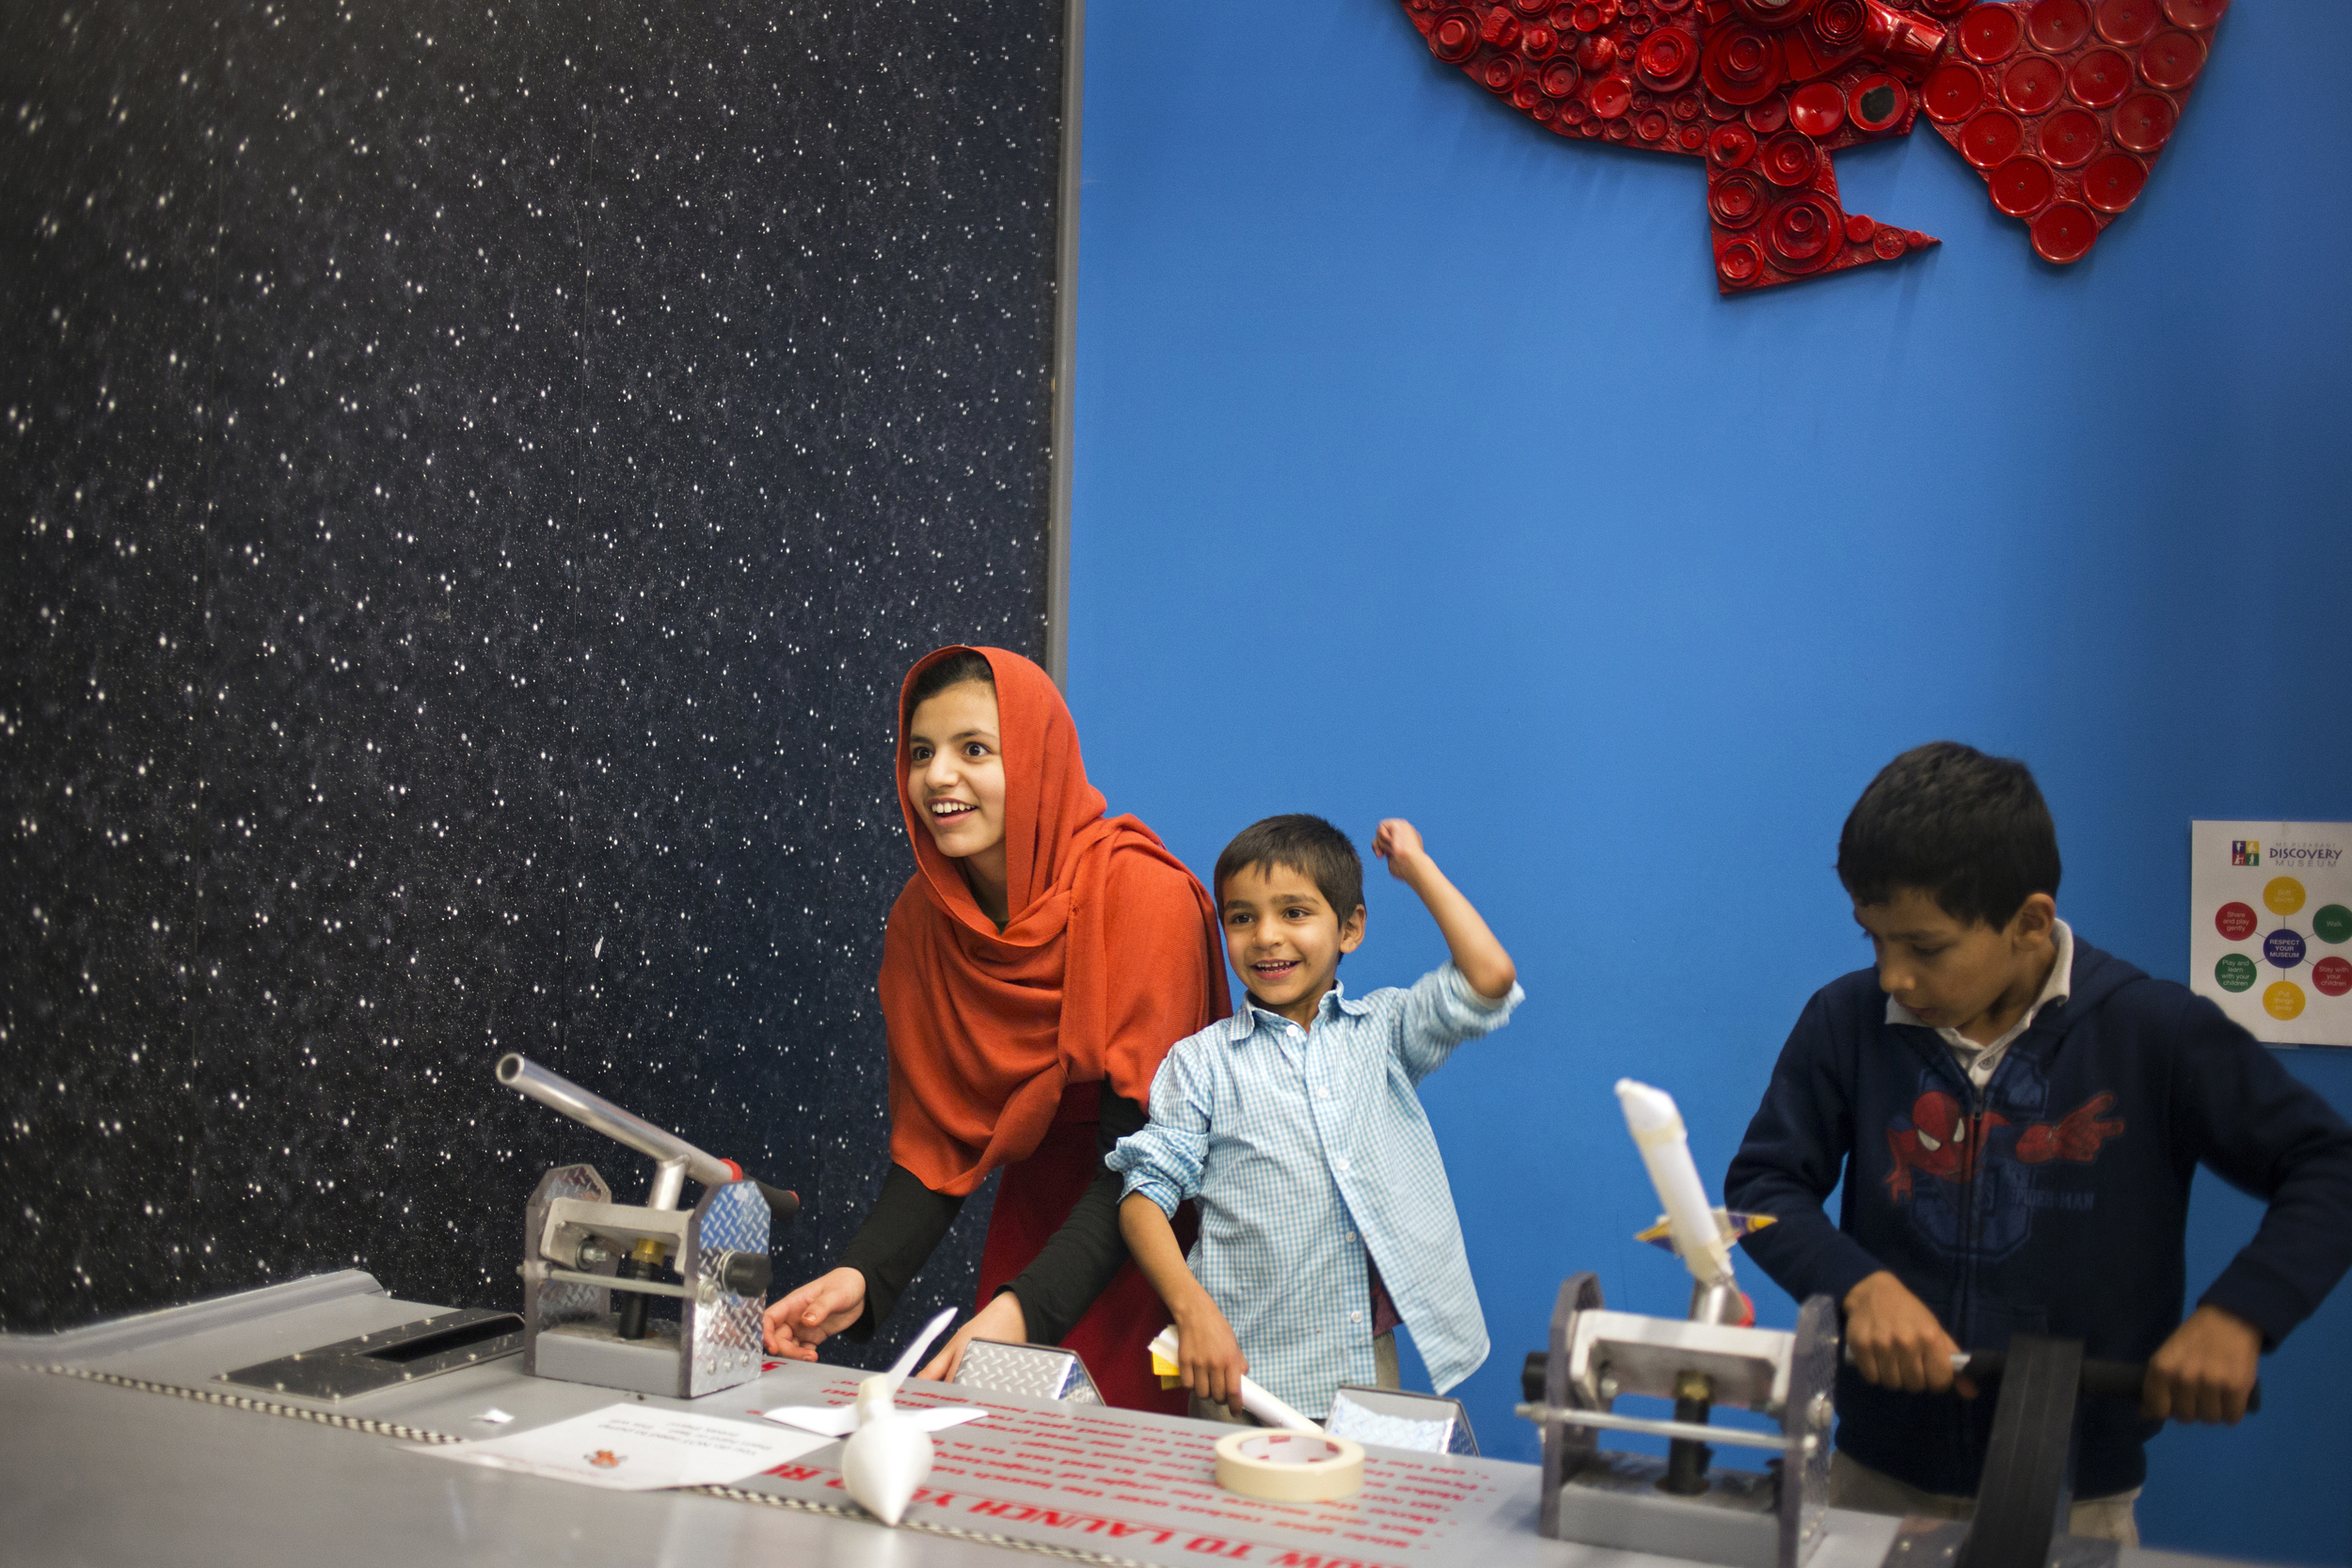 Khatera, Ehsanullah, and Kawoon launch paper rockets at the Mount Pleasant Discovery Museum. Their grandmother, Eileen Jennings, plans activities for the kids when they visit her in Mount Pleasant. Jennings helped Ezatullah and his family when they first moved to Lansing, taking them to get groceries weekly and opening up her home to them when they needed it.